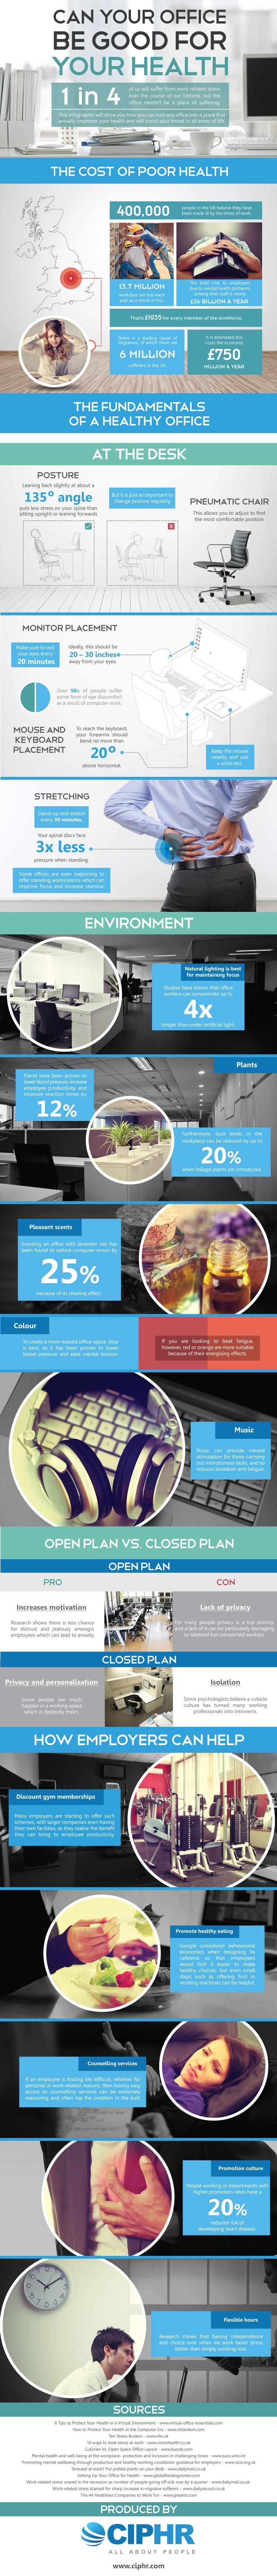 Workplace Health and Wellness-Infographic